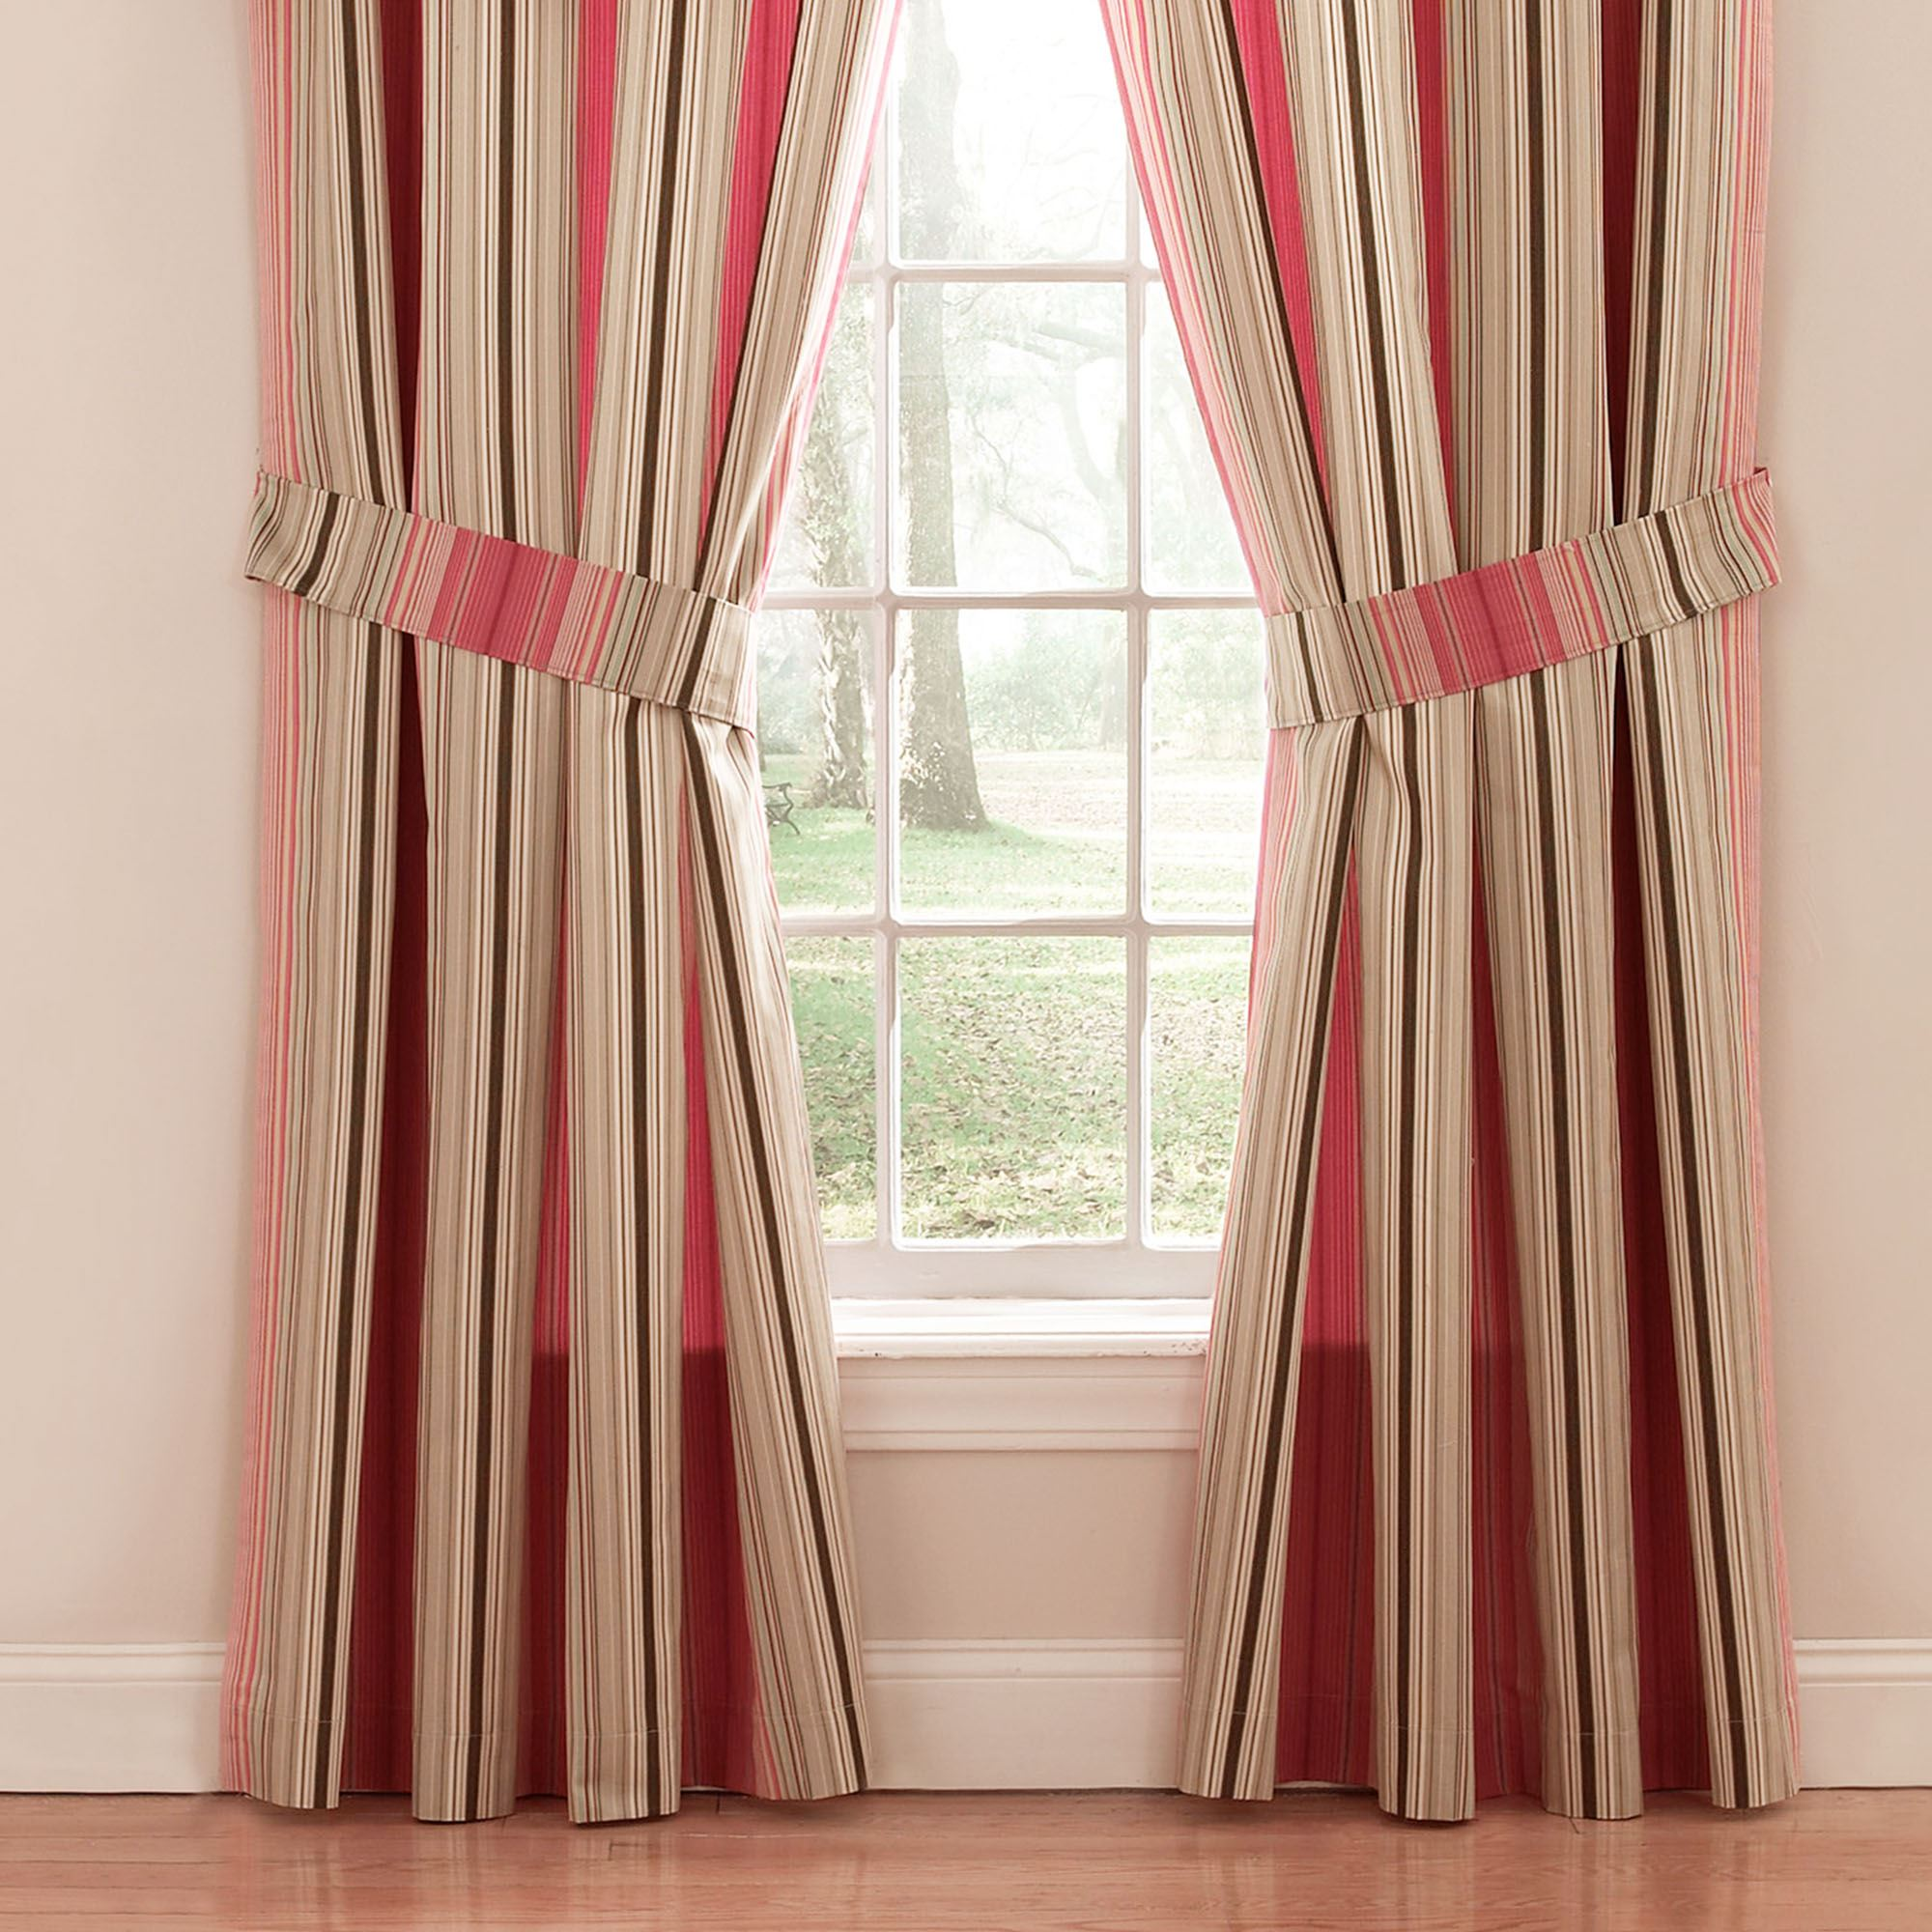 cote curtain treatments window exotic bohemian azur treatment curtains d and designs drapes